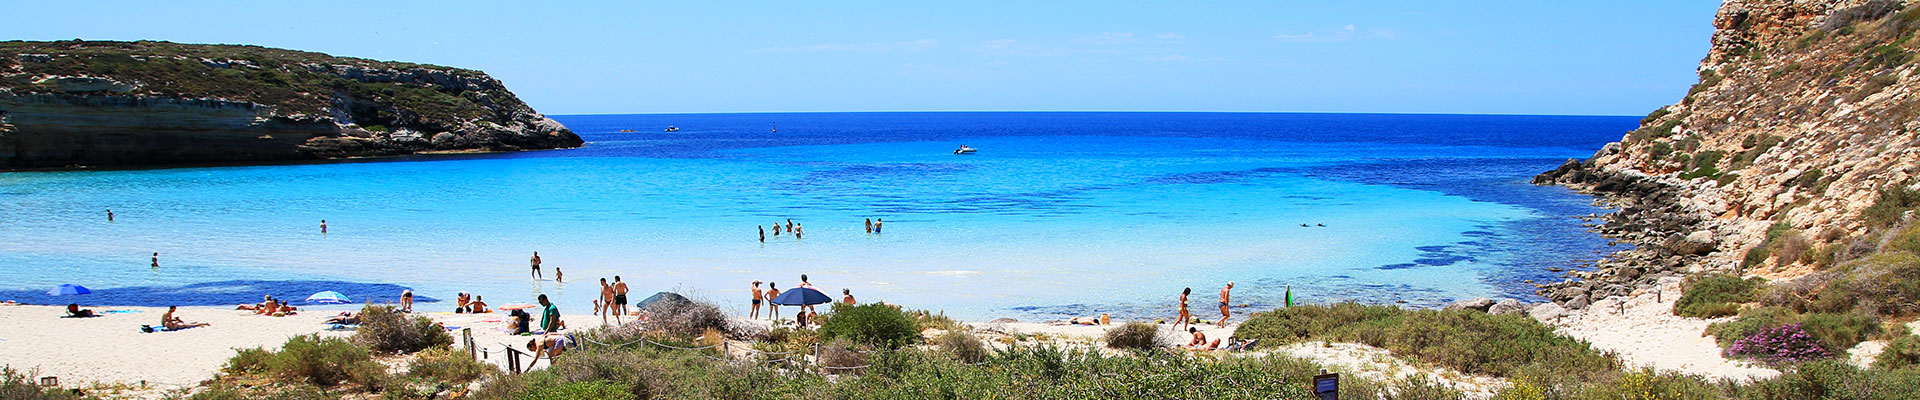 Mare - Residence del Sole Lampedusa